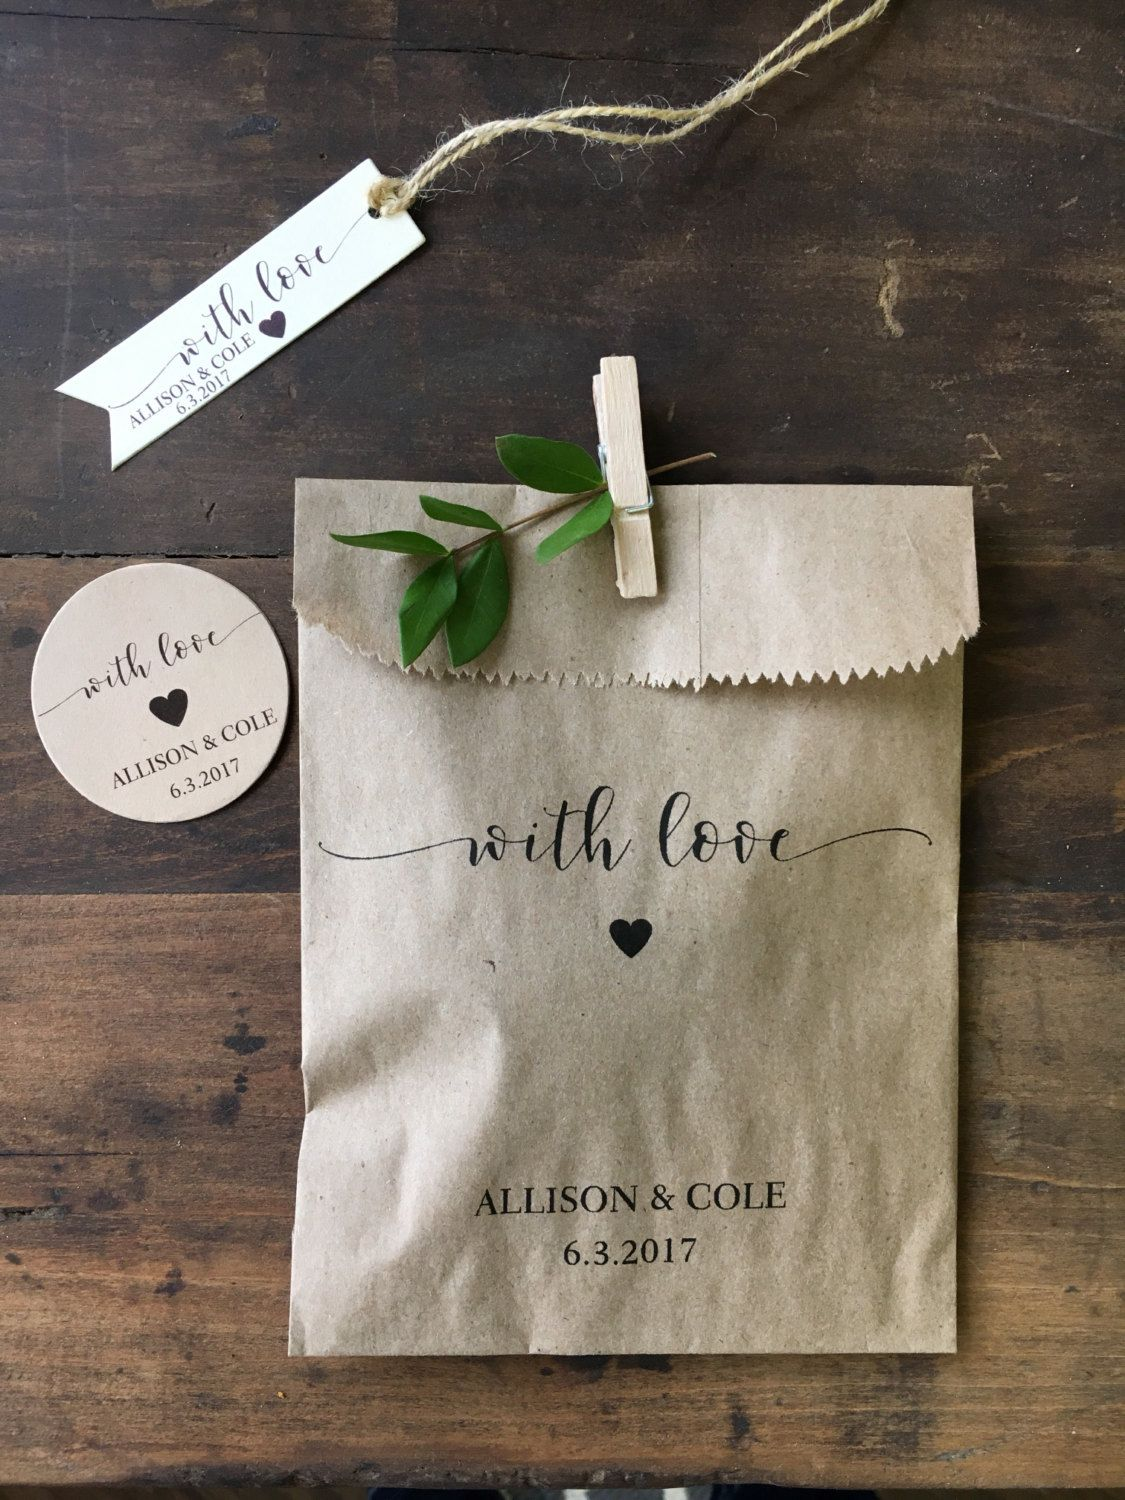 Wedding Favors Custom Printed Favor Bags Recycled Wedding Zoes